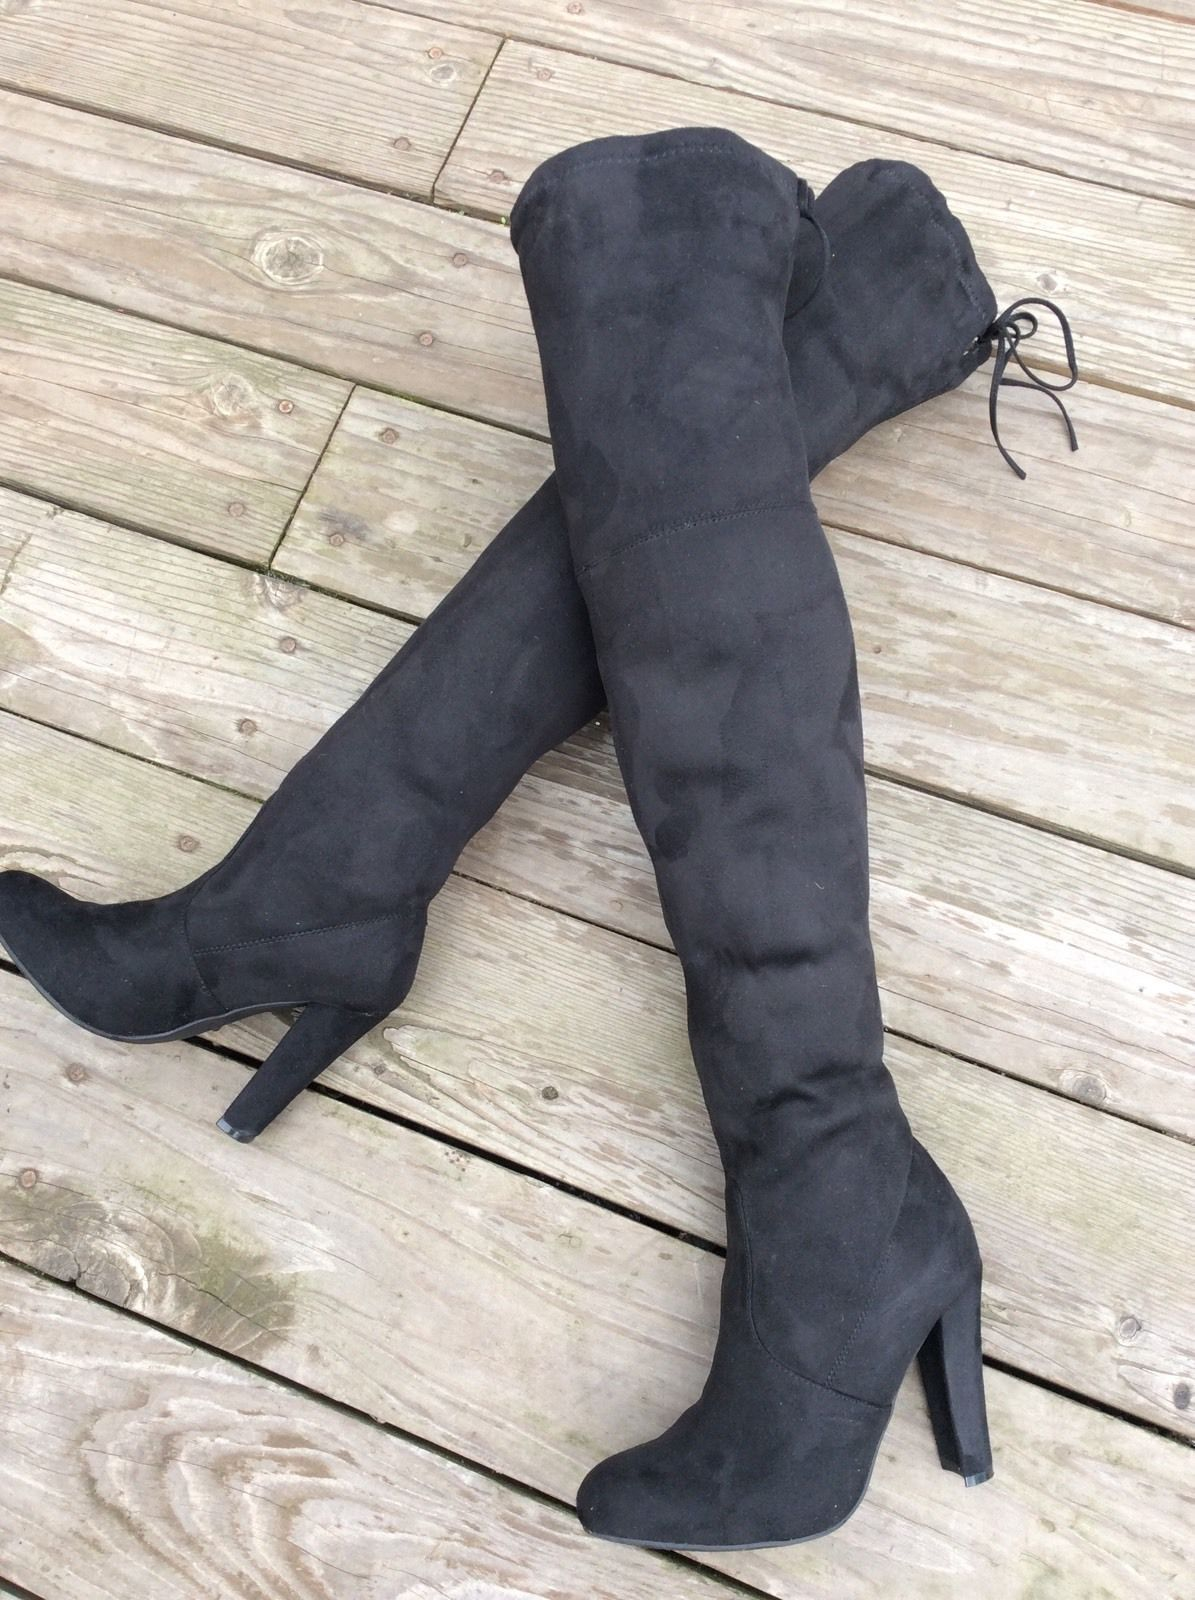 960b81b5458  150 Steve Madden Gorgeous Black Synthetic Over The Knee Boots Size 7 M   knee  boots  size  over  synthetic  madden  gorgeous  black  steve